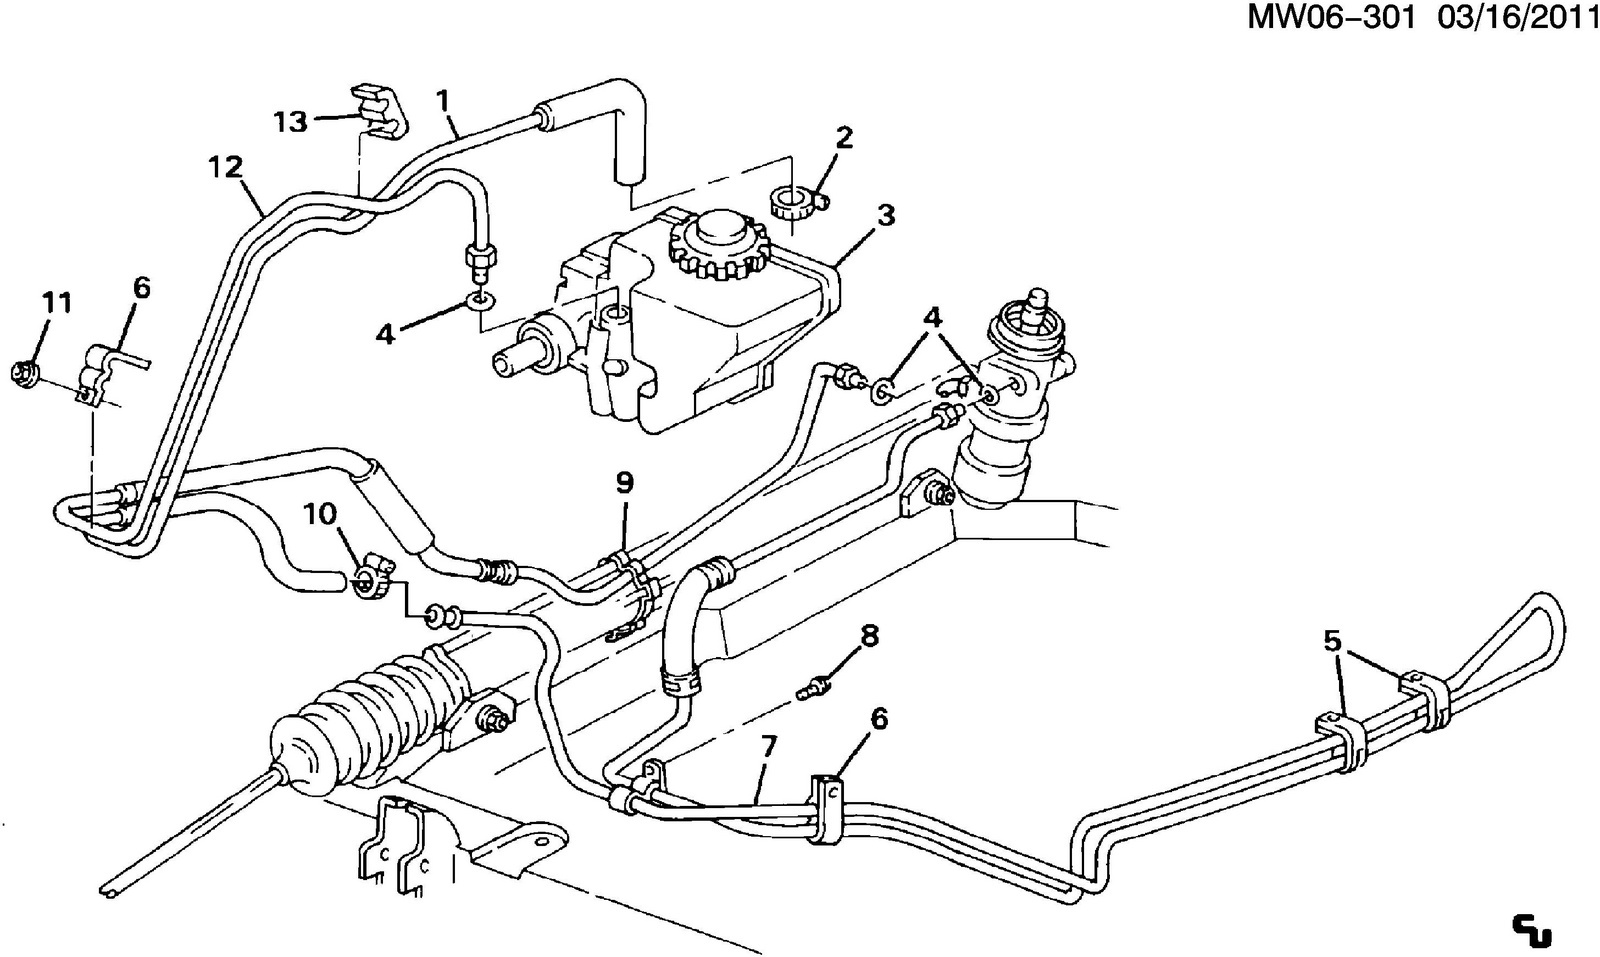 P 0996b43f80cb1e11 as well 1988 Jeep Wiring Diagrams also Cadillac Northstar Timing Chain Diagram furthermore 2001 Pontiac Grand Prix Heater Diagram furthermore Chevy Heater Hose Diagram. on 1993 corvette power steering leak